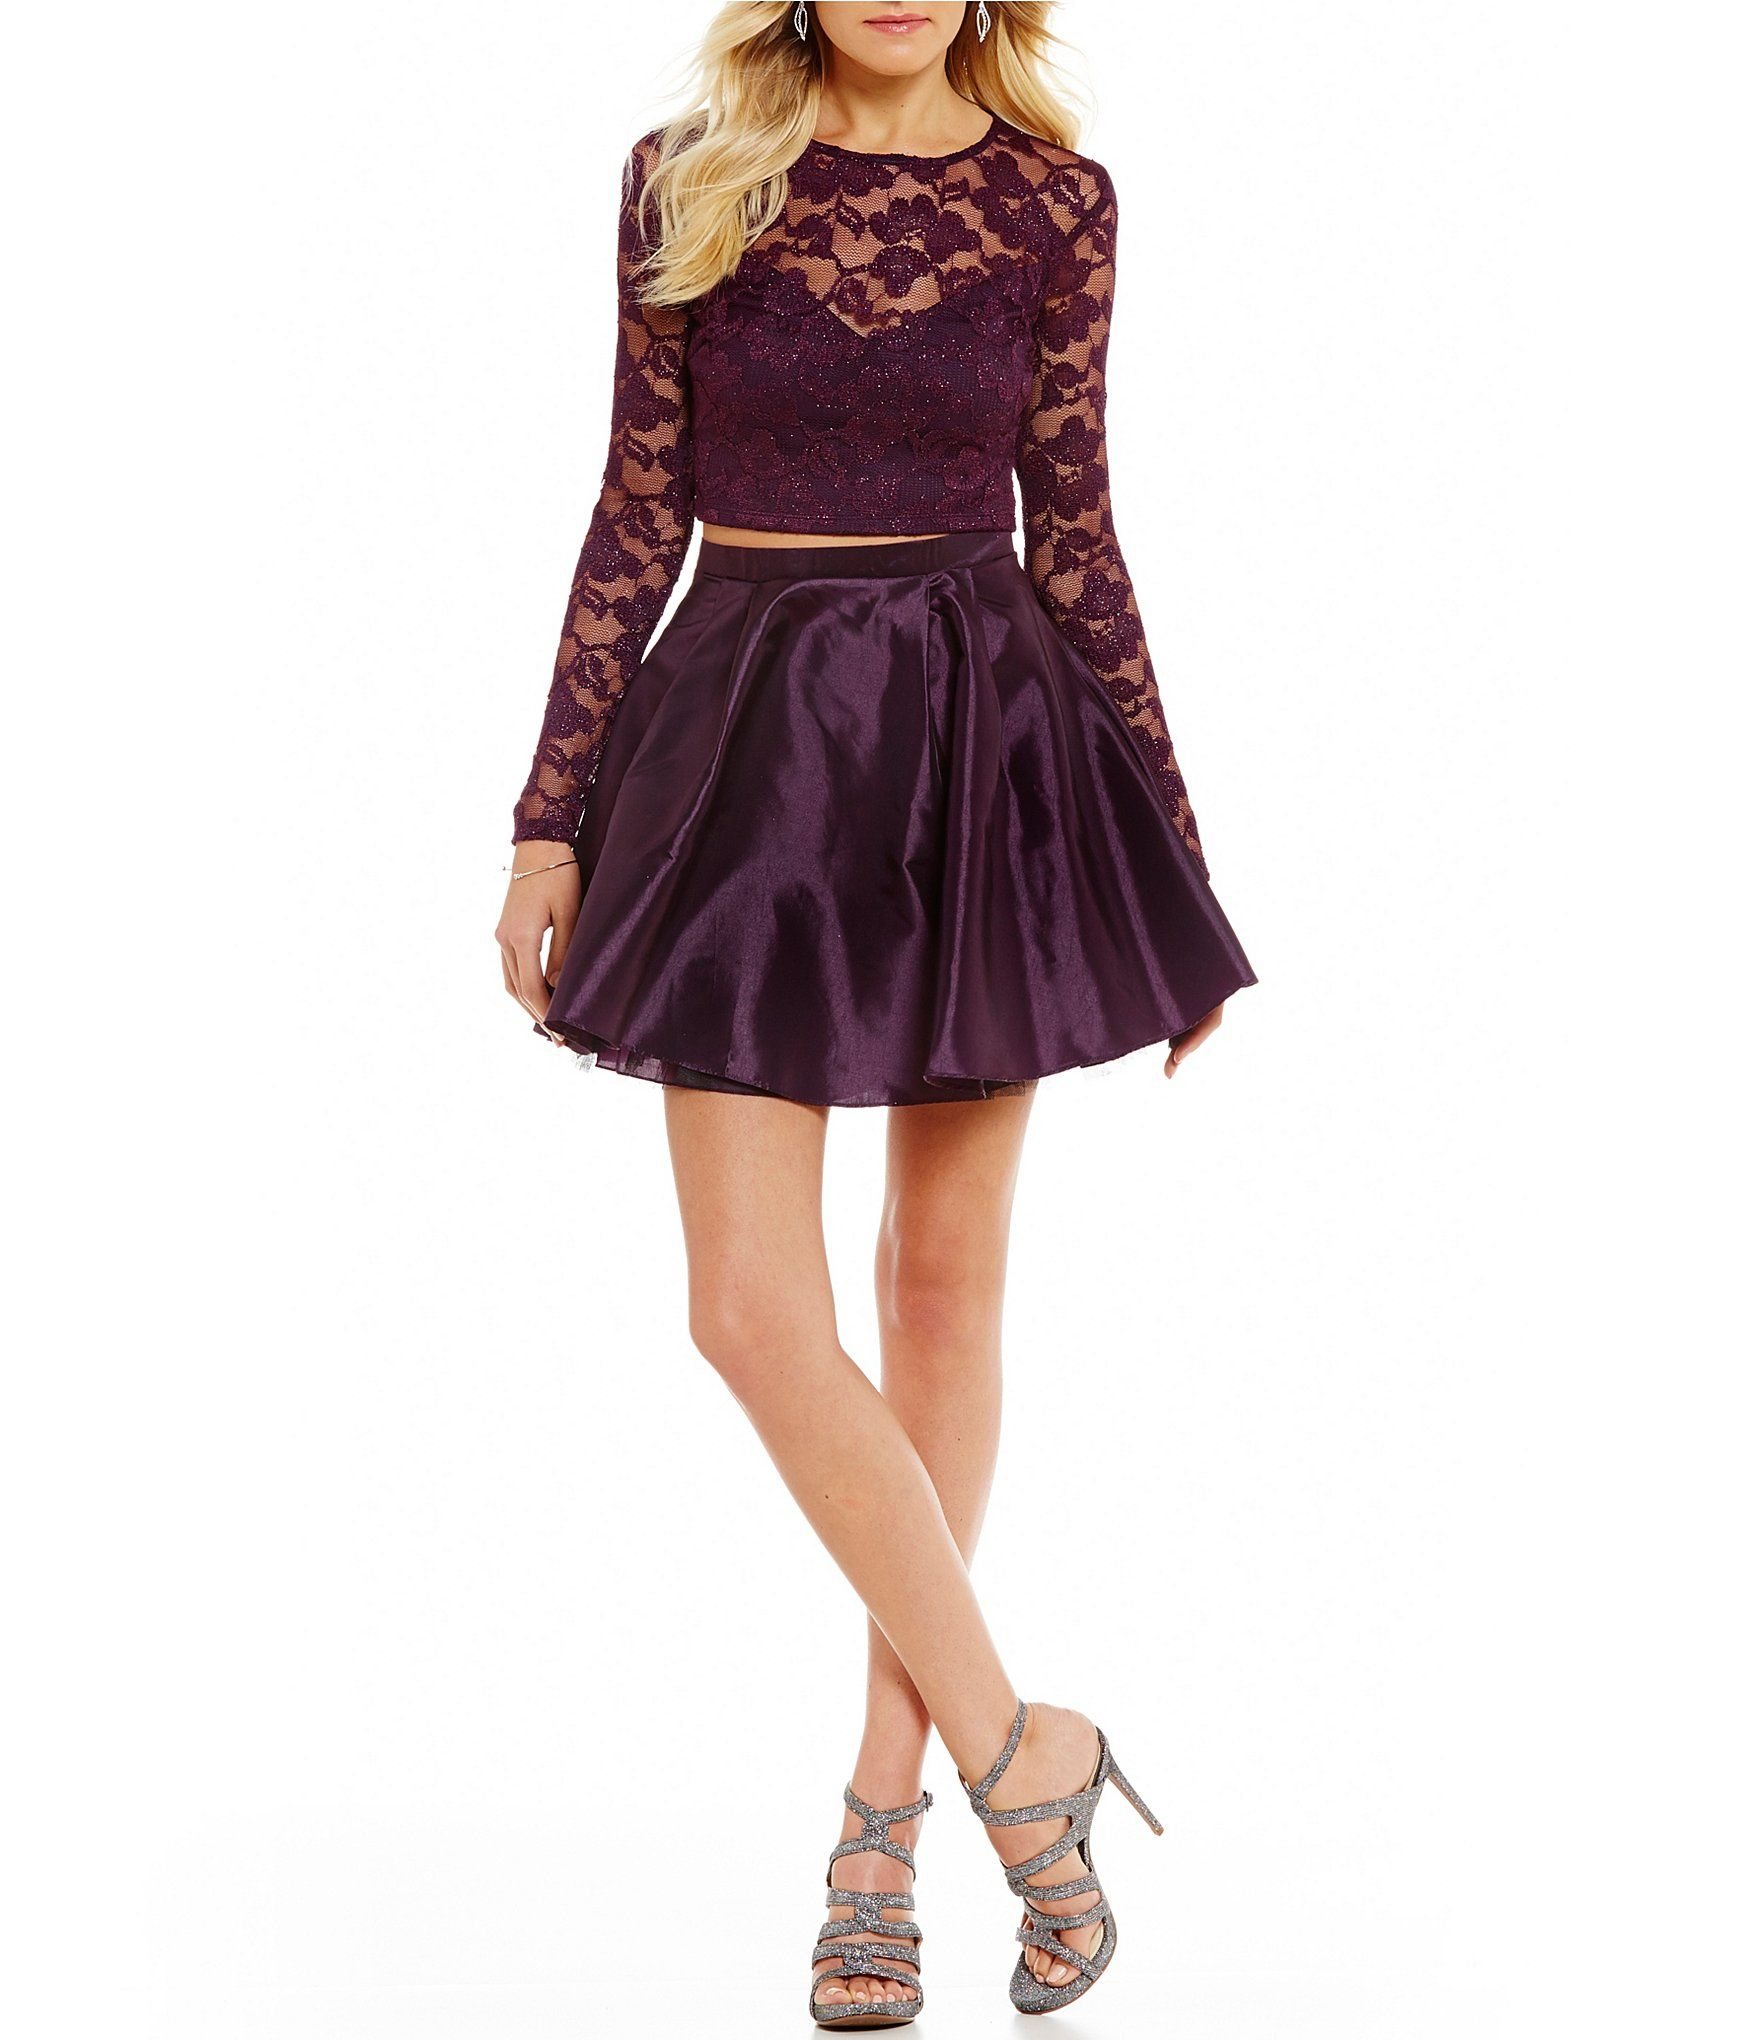 a693f3efdd5 Shop for B. Darlin Long Sleeve Glitter Lace Two-Piece Dress at Dillards.com.  Visit Dillards.com to find clothing